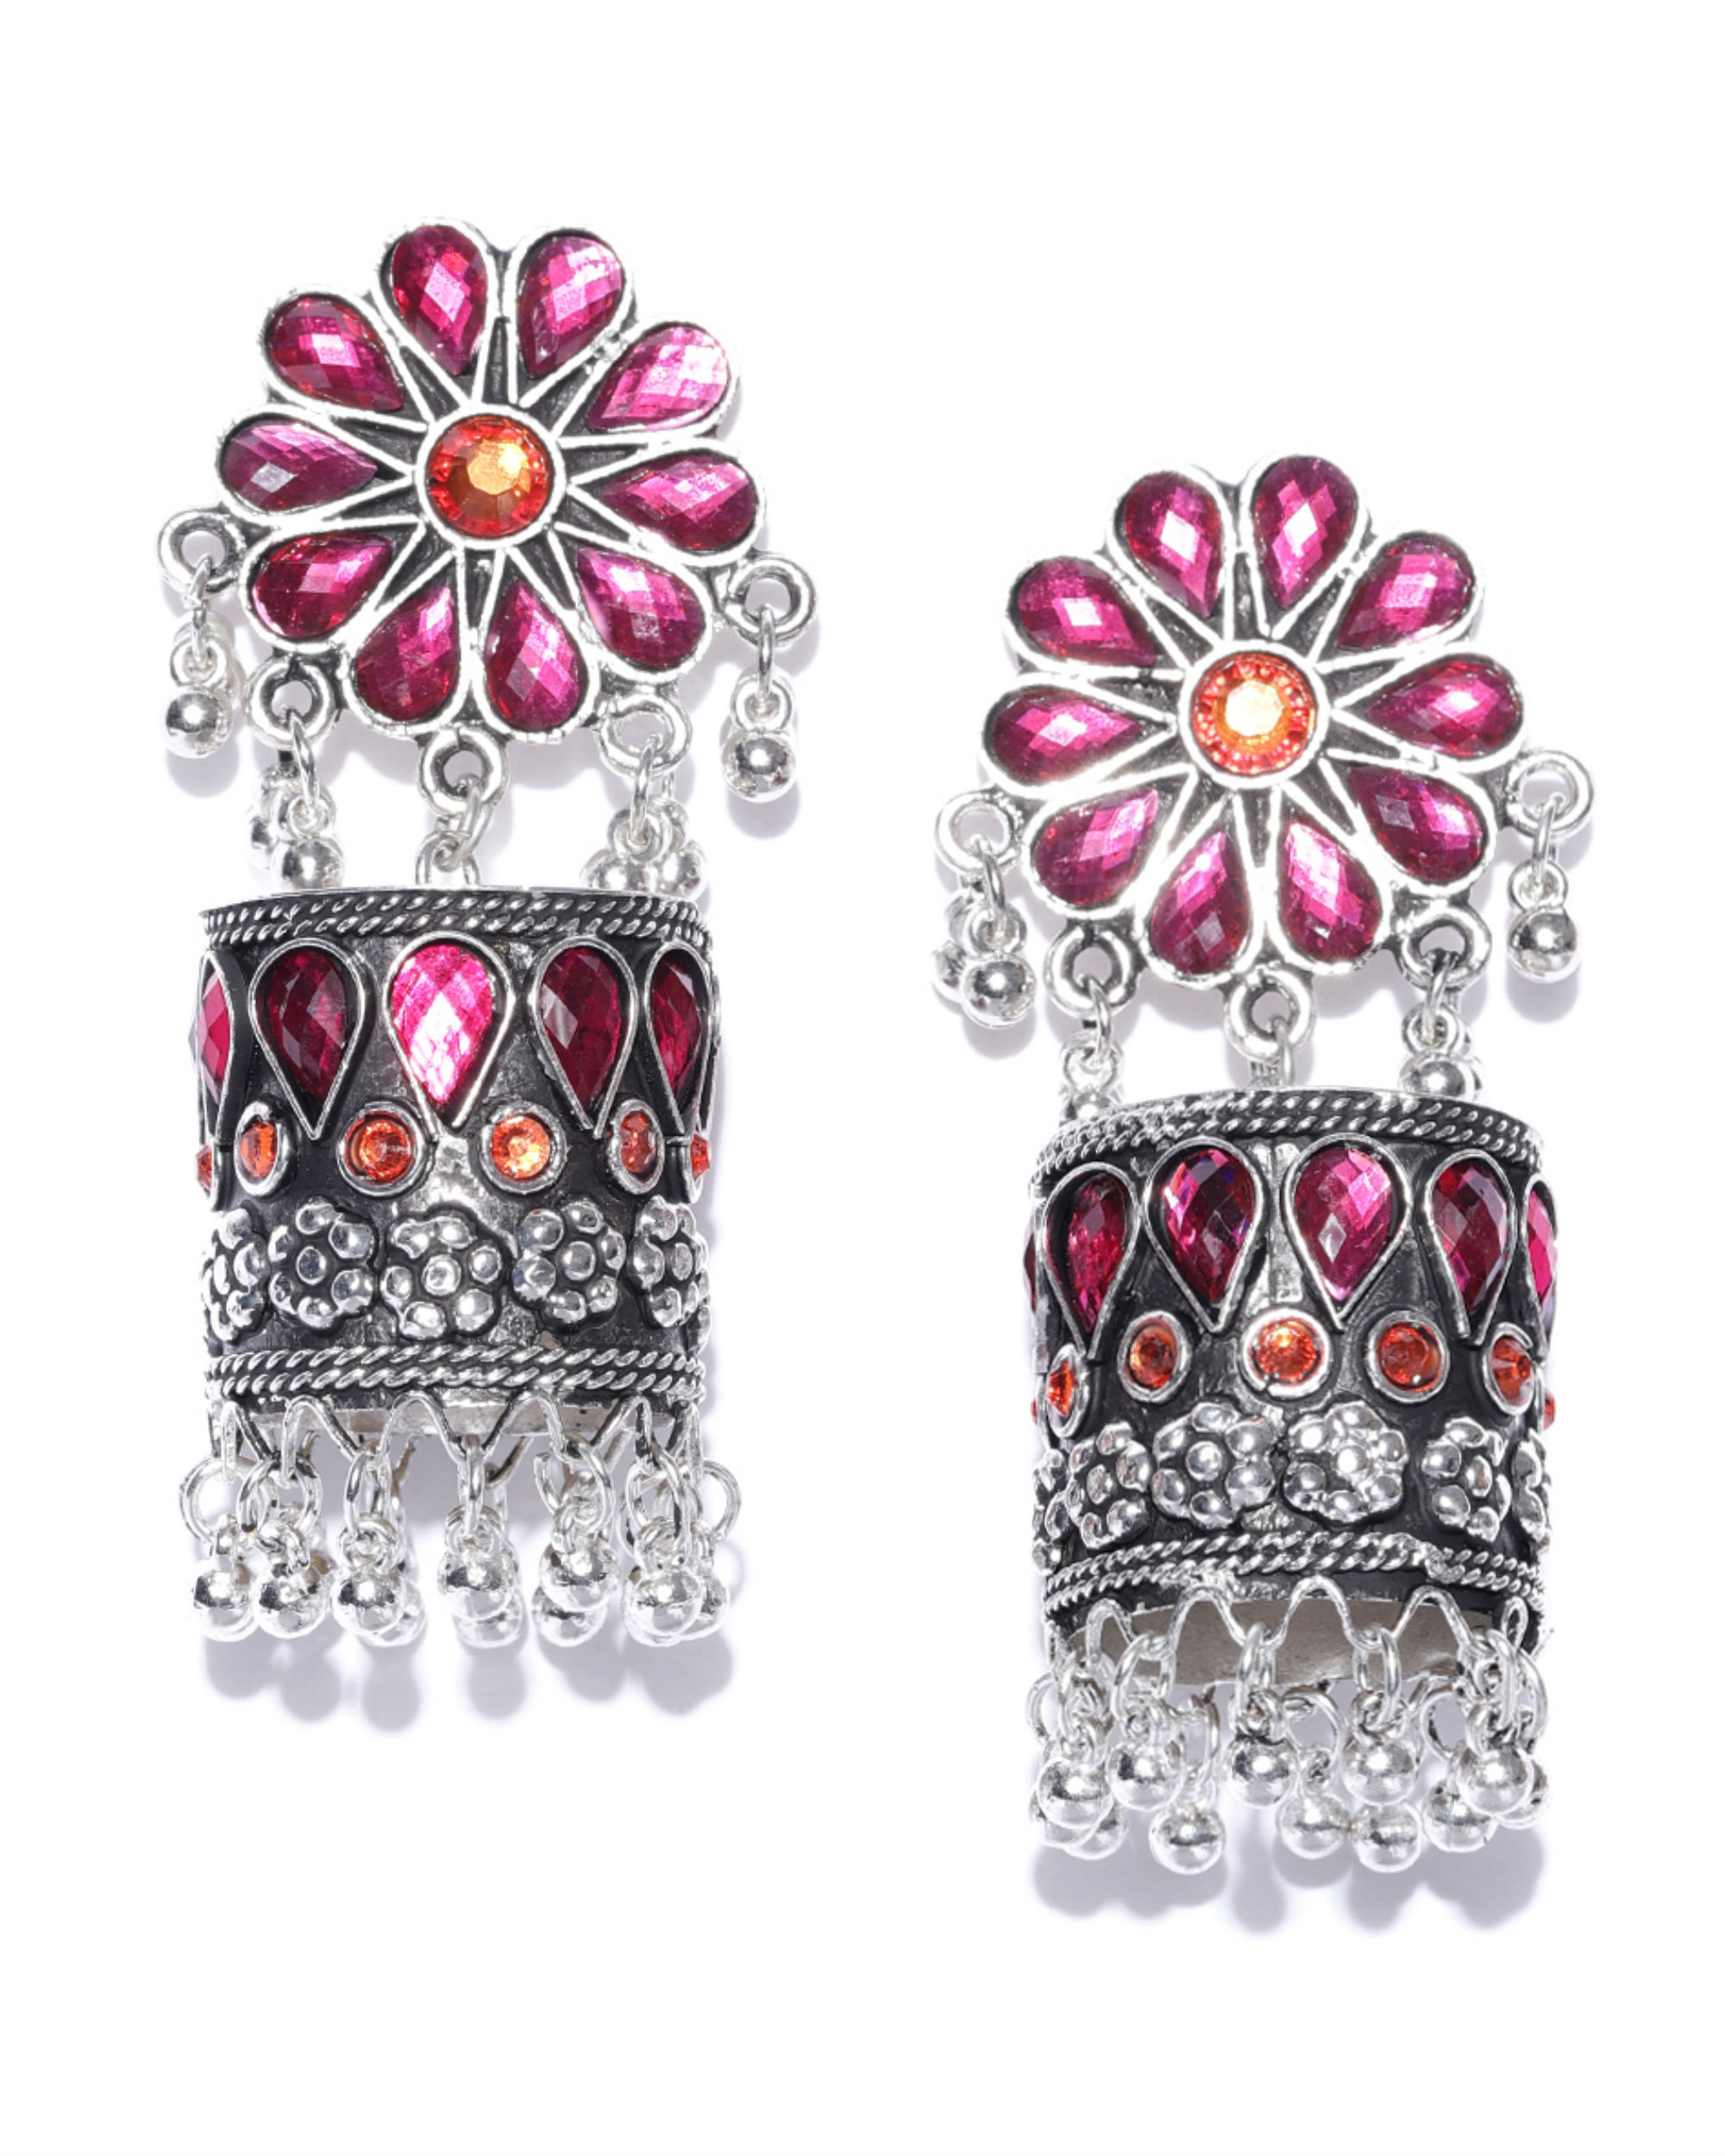 Silver-toned & pink dome textured jhumkas